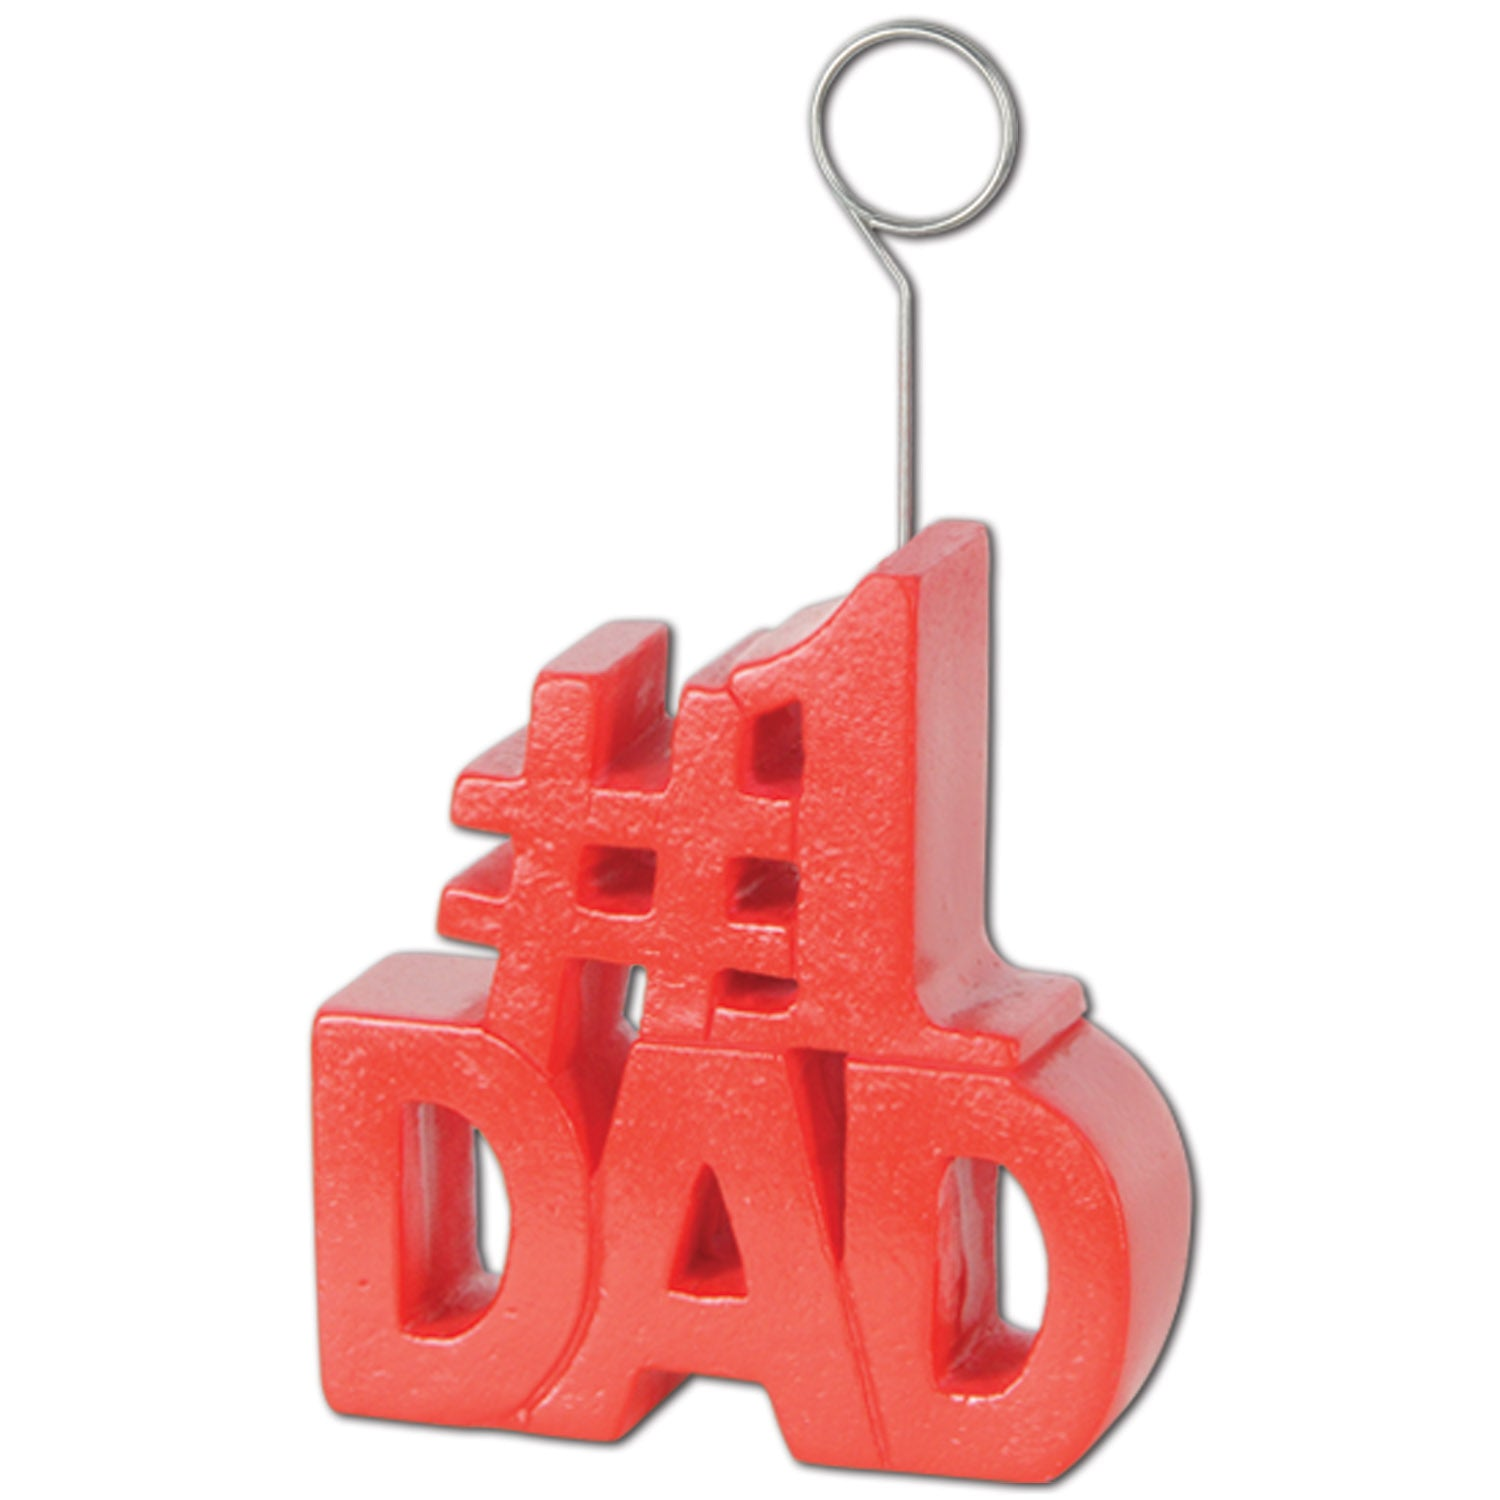 #1 Dad Photo/Balloon Holder by Beistle - Father's Day Theme Decorations